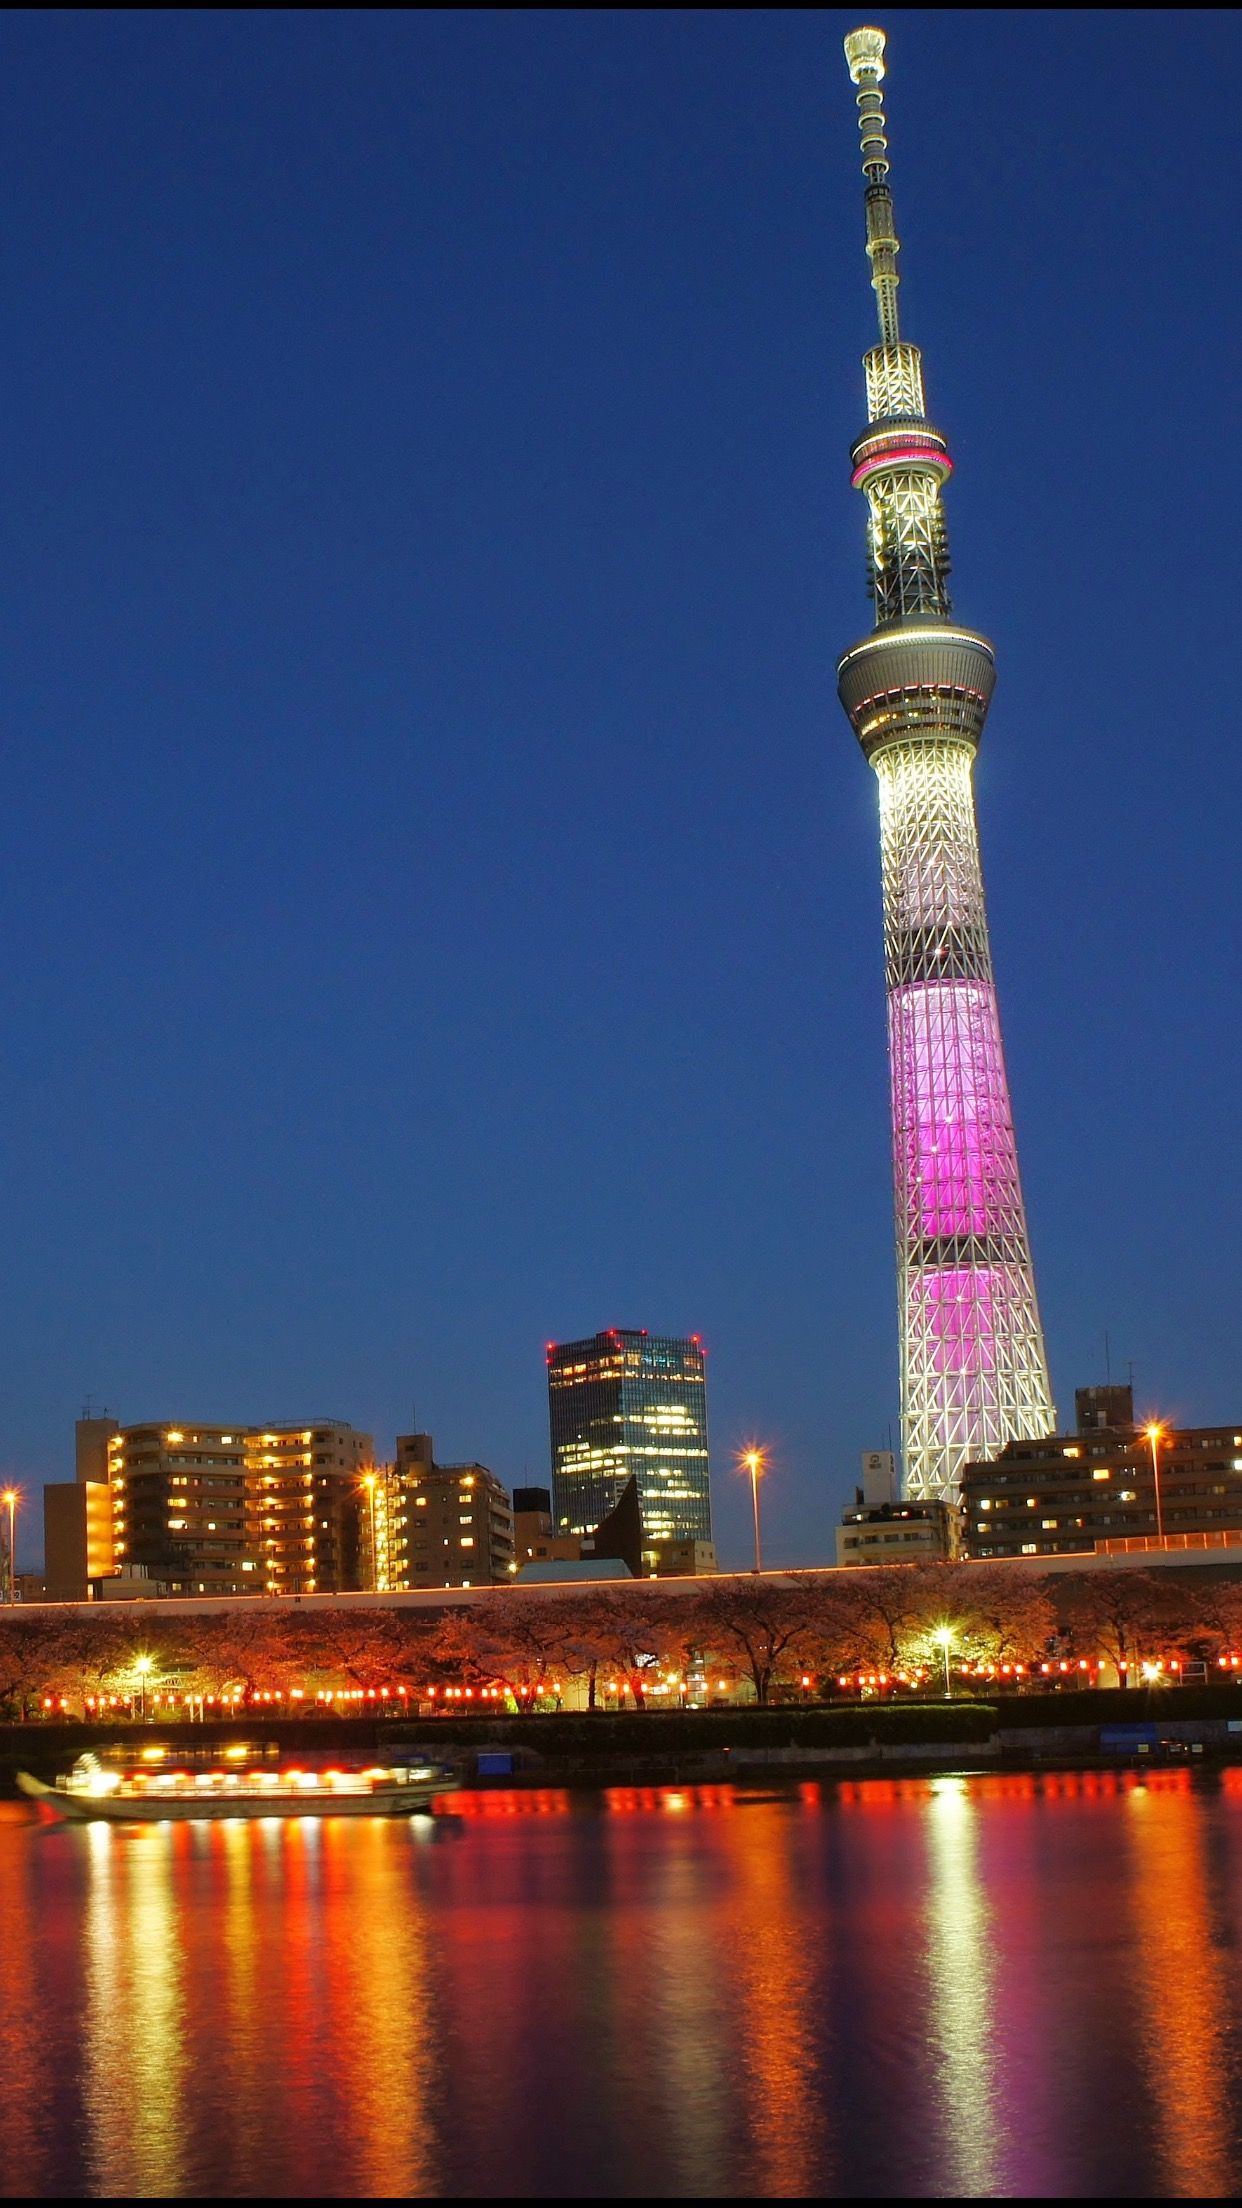 Wallpaper Tokyo Skytree Wallpaper Collection Iphone 66s Plus